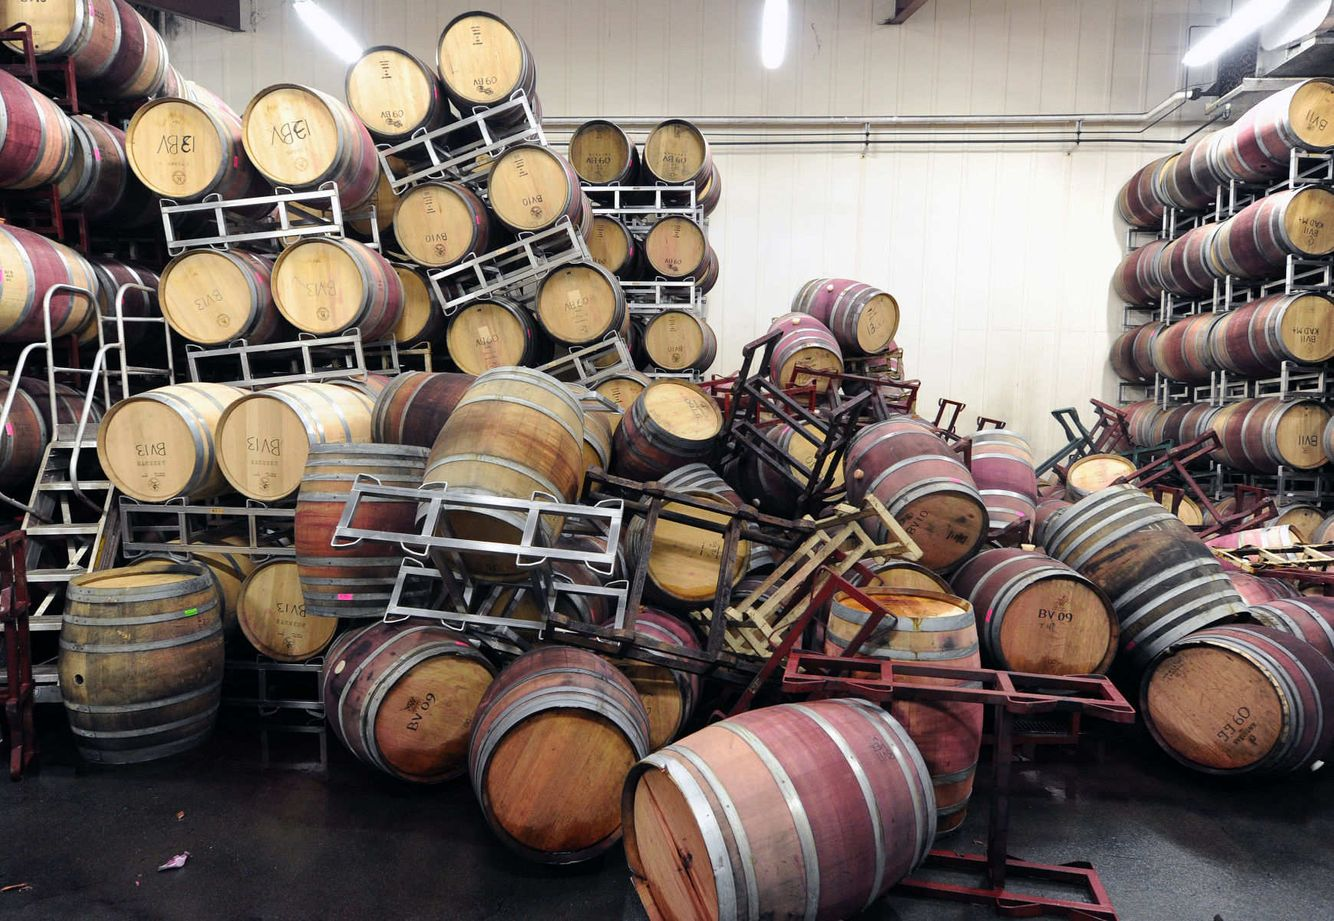 EARTHQUAKE: Barrels are strewn about at a winery in Napa, California after a 6.1 Earthquake struck the area.